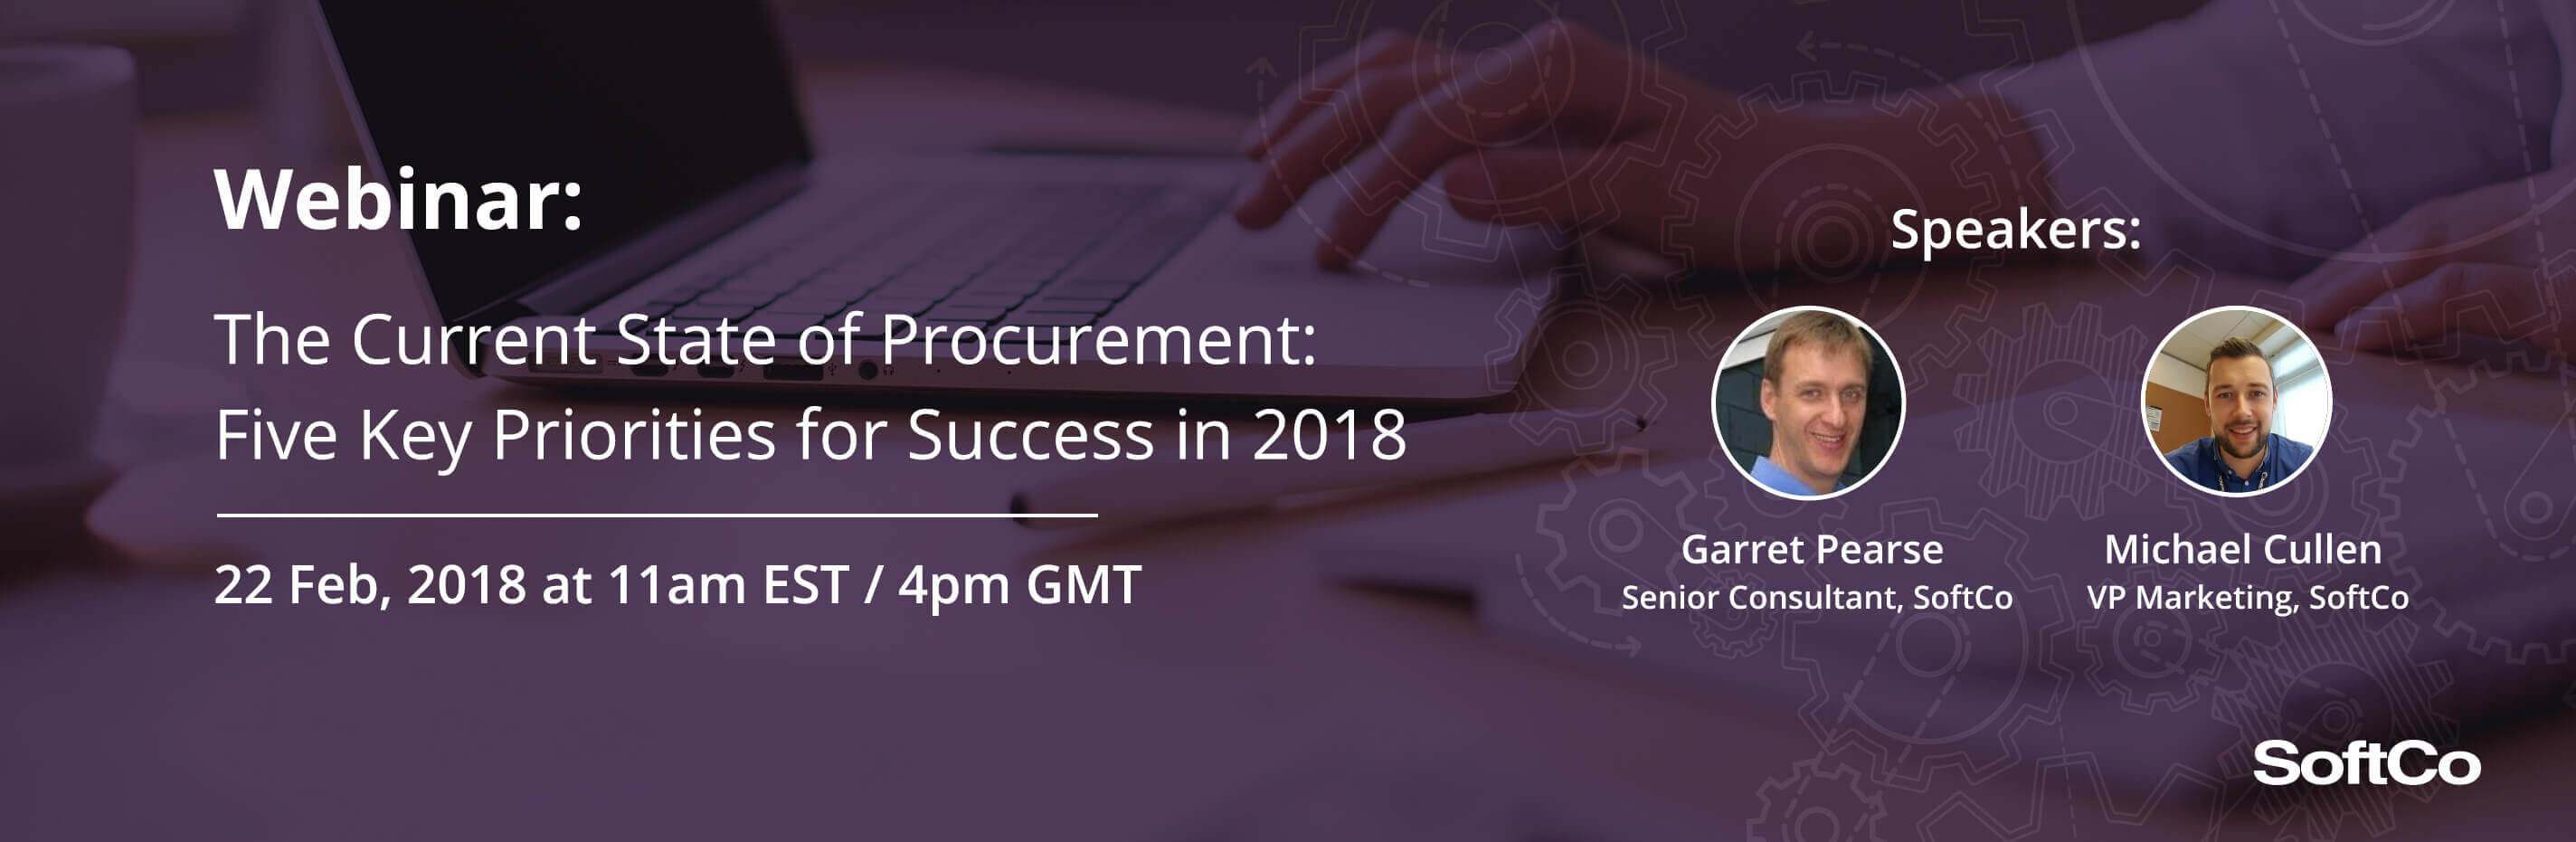 Webinar: The Future of Accounts Payable: 5 Key Priorities for 2018